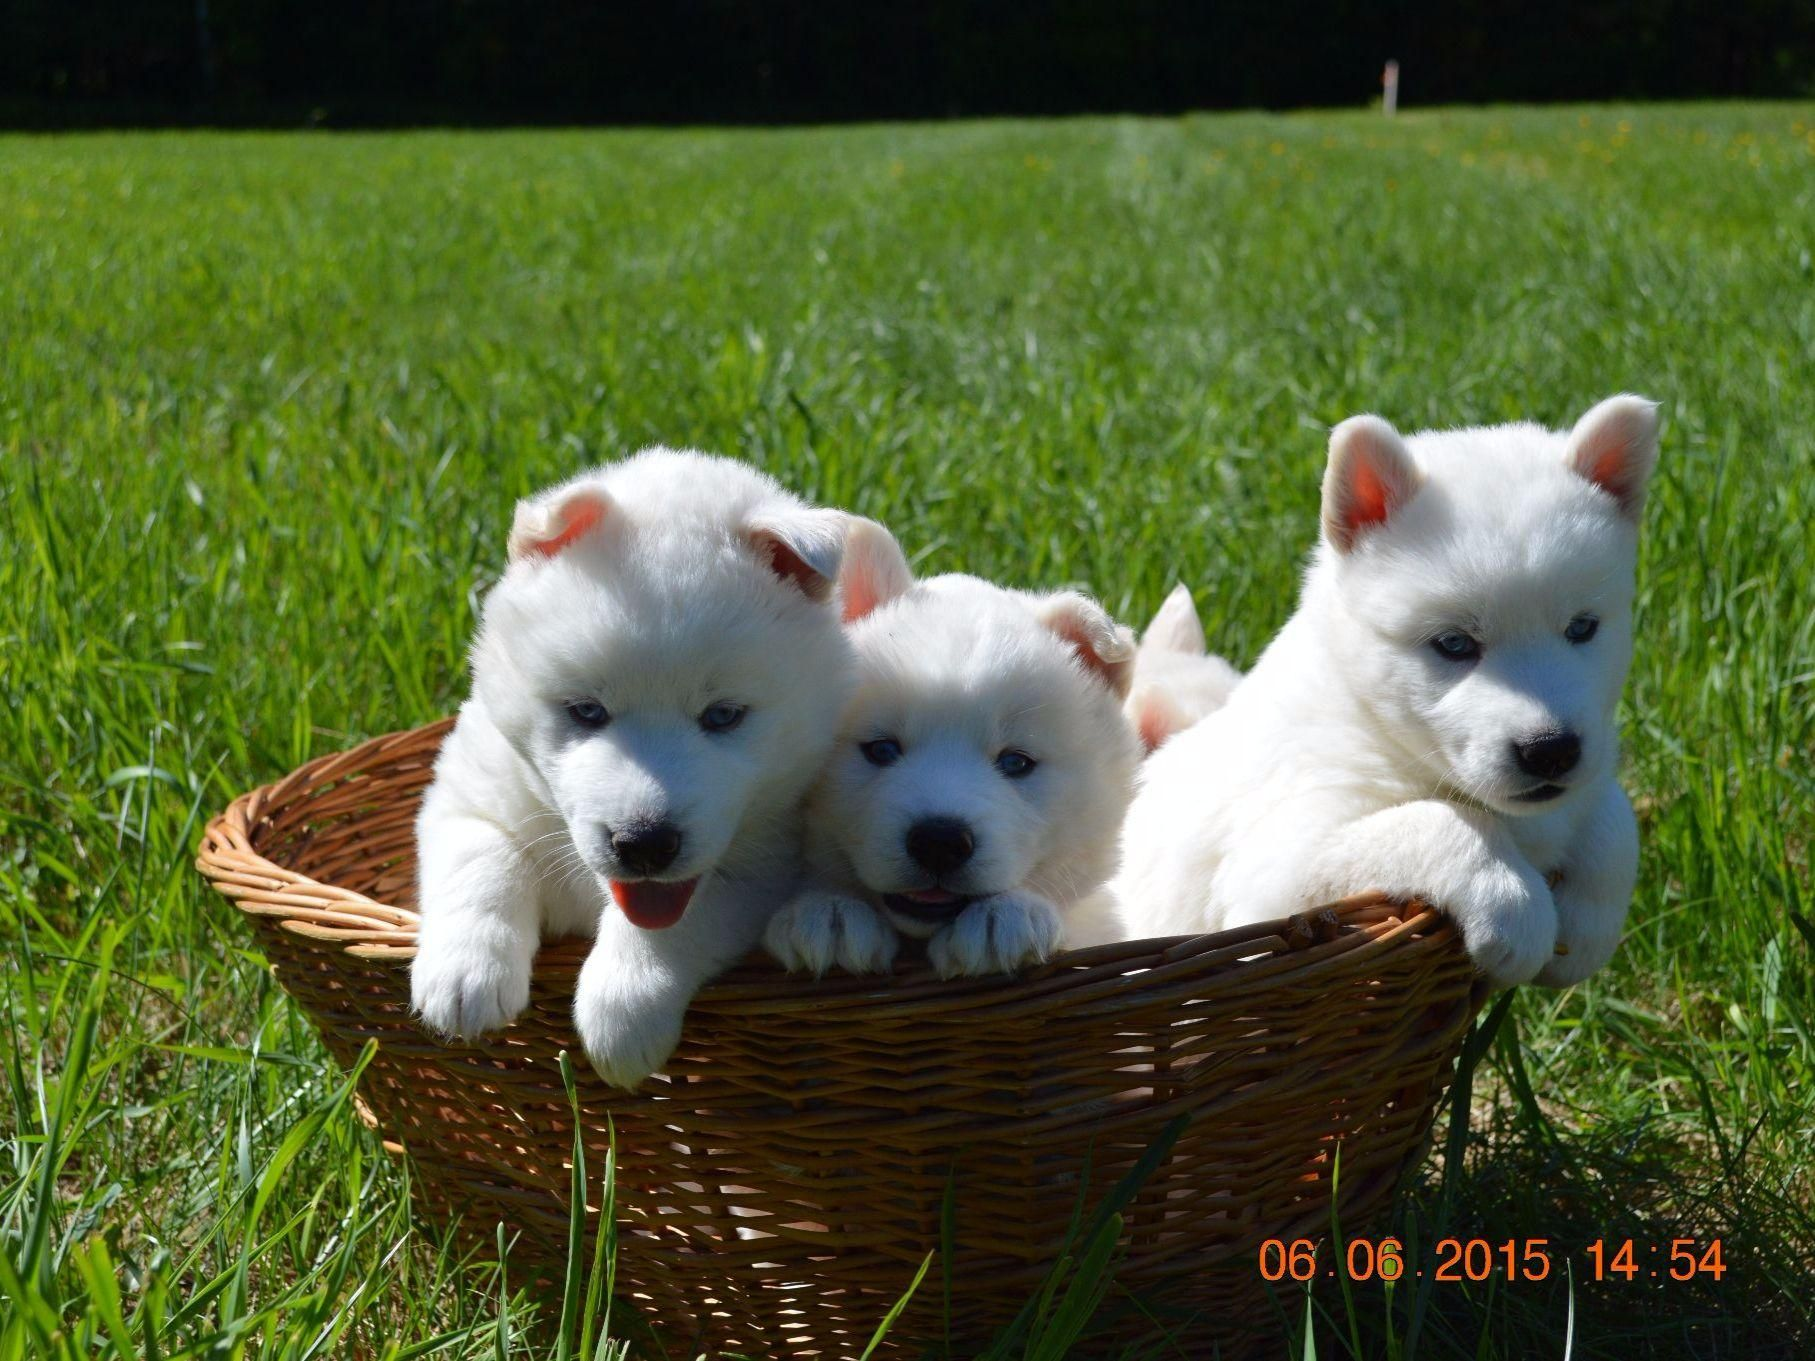 Snow Wooly Husky Puppies For Sale Siberian Husky Puppies For Sale Greenfield Puppies Siberian Husky Puppy In 2020 Husky Puppies For Sale Husky Puppy Puppies For Sale